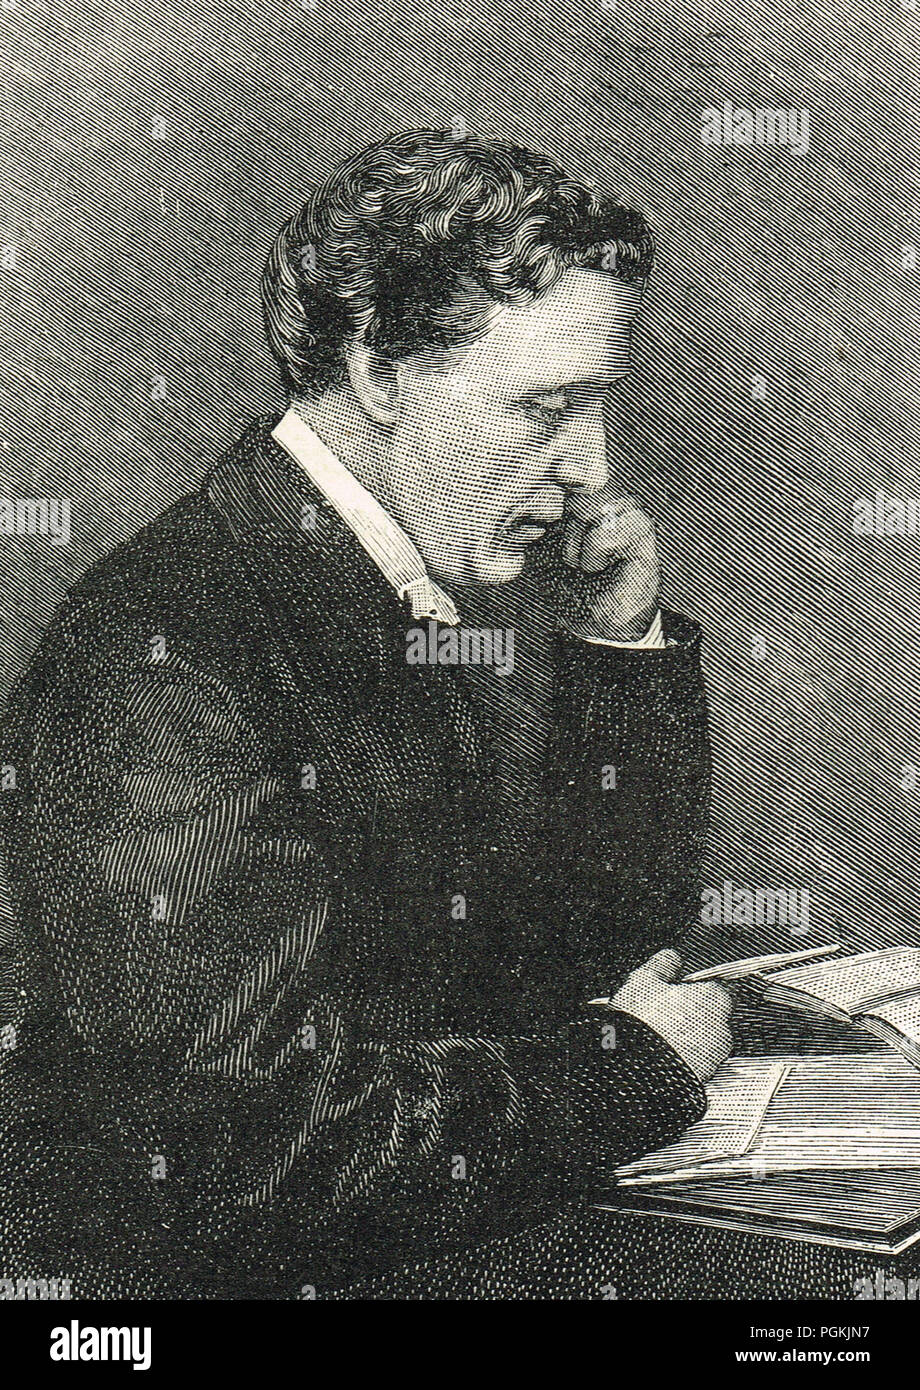 Lewis Carroll, real name Charles Lutwidge Dodgson, famous for Alice's Adventures in Wonderland, Through the Looking-Glass, and the poems Jabberwocky, and The Hunting of the Snark - Stock Image